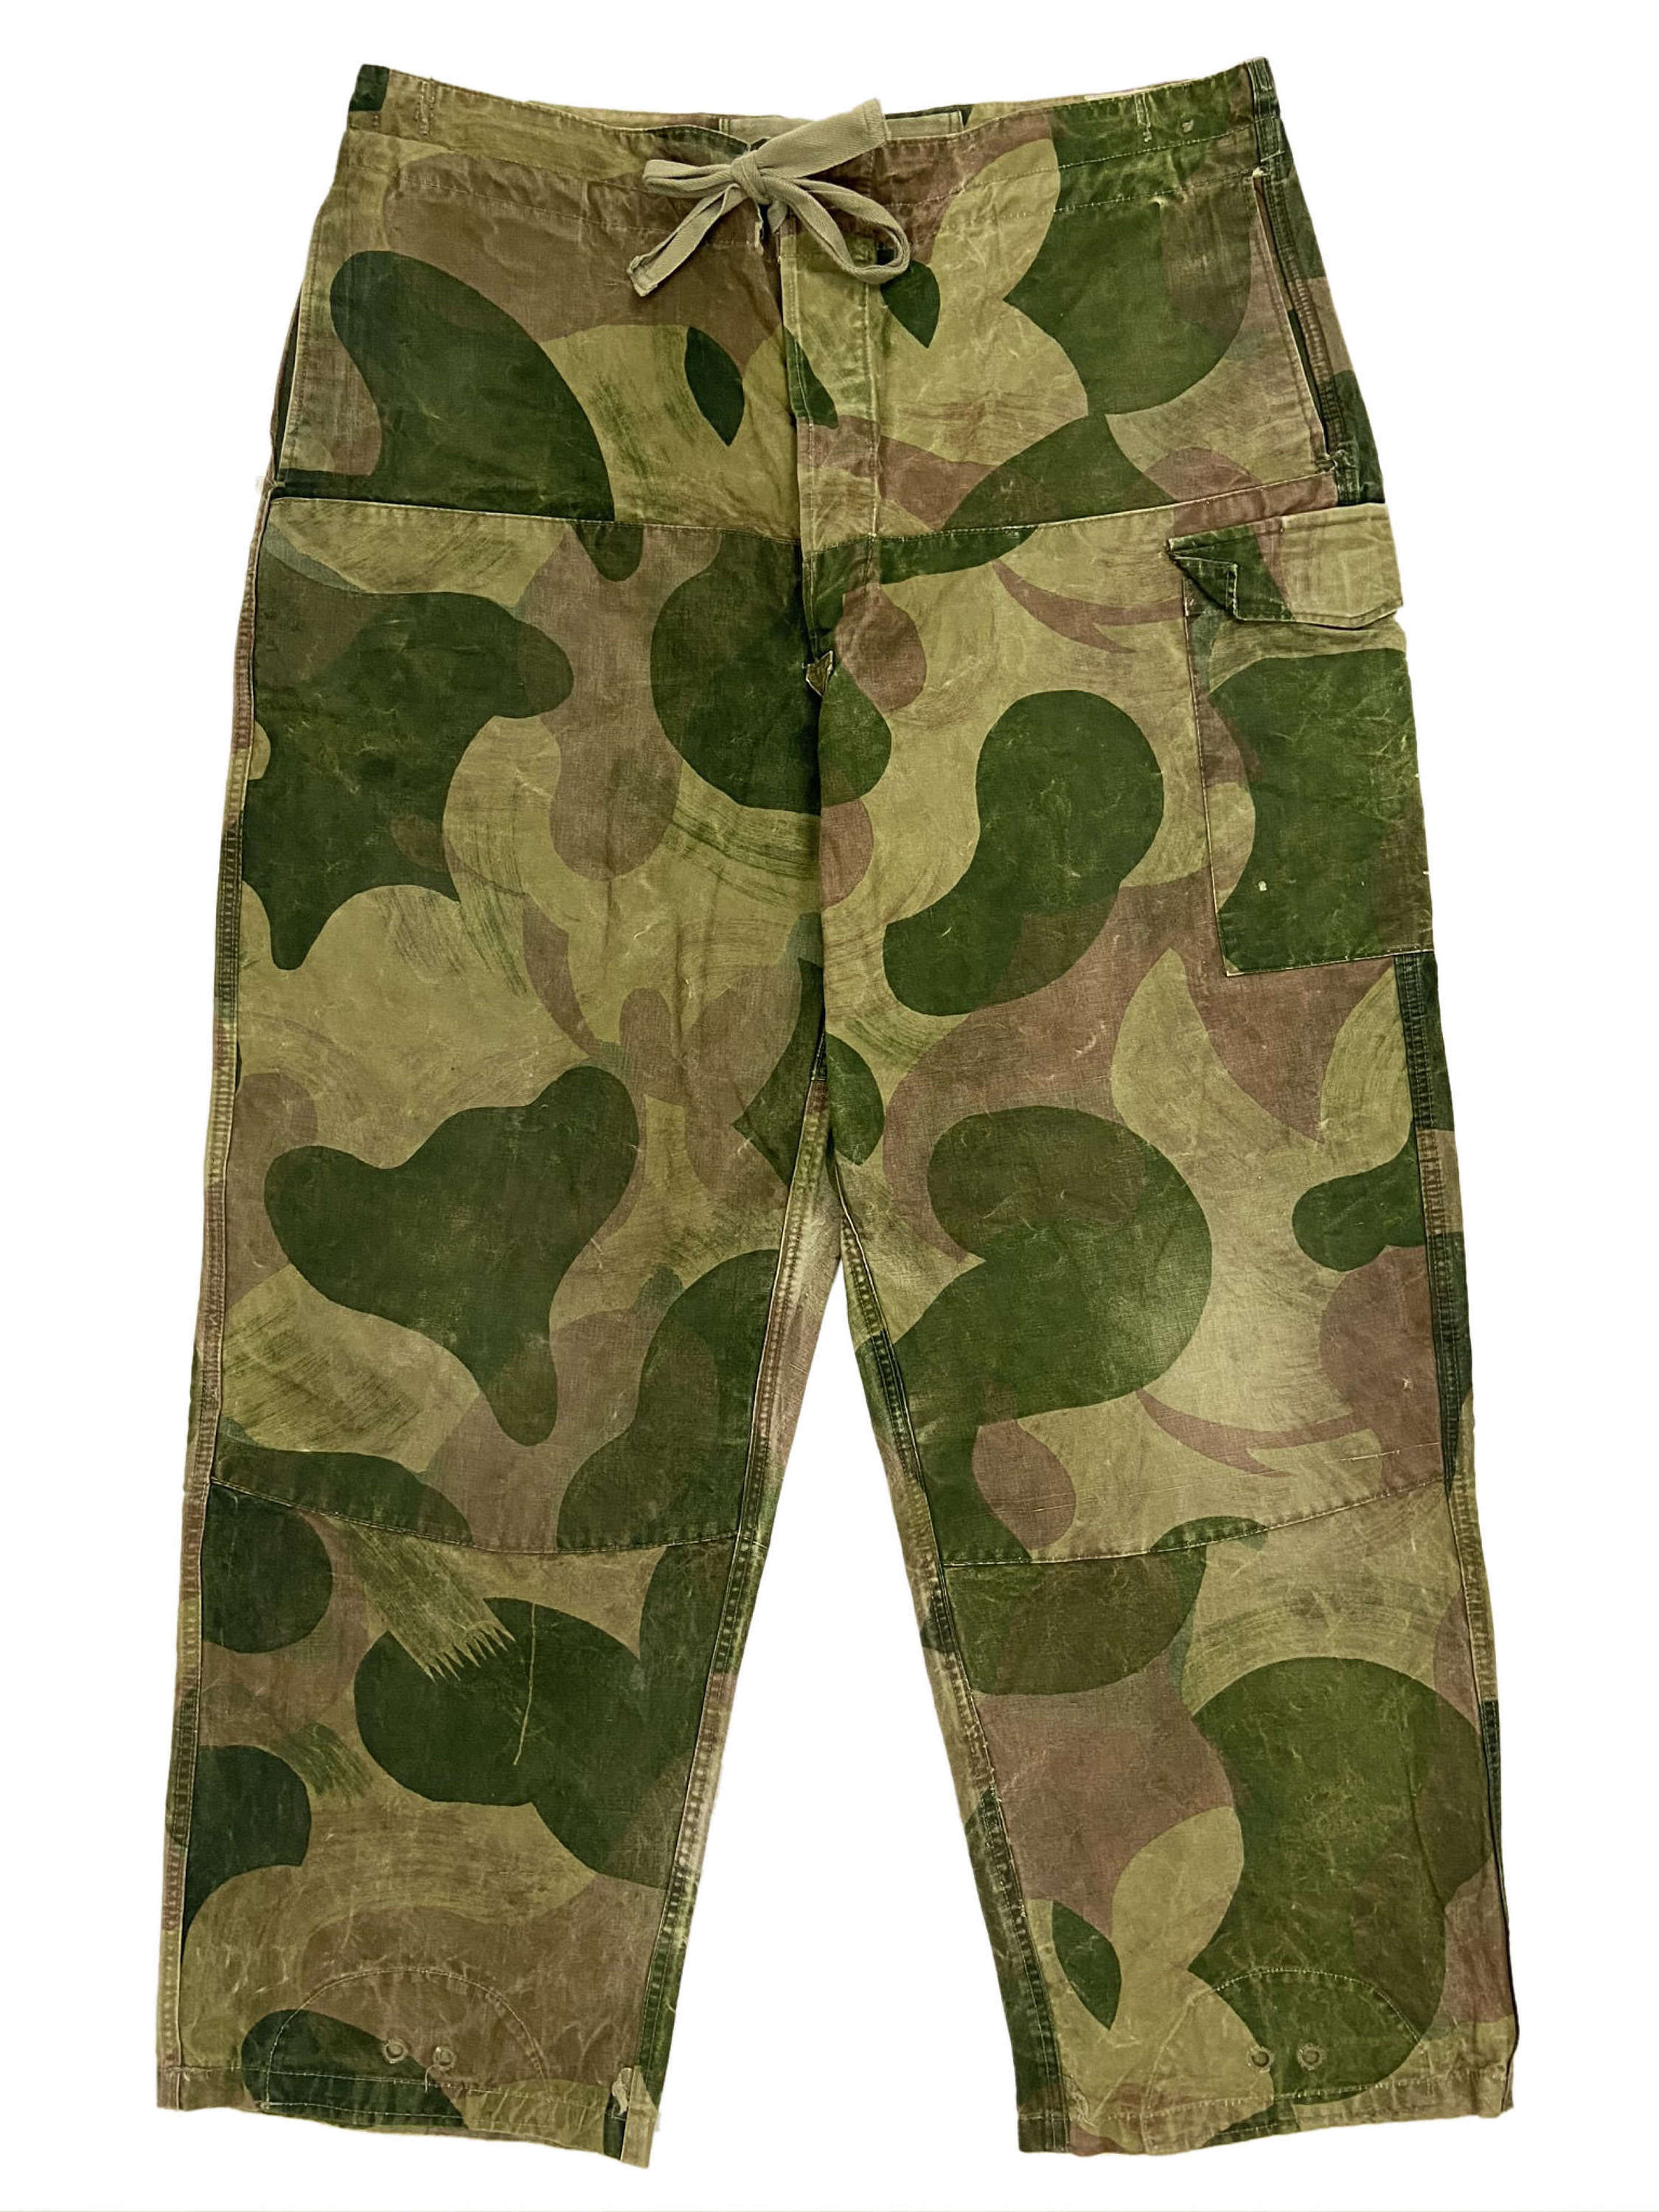 Original 1956 Dated Belgian Army Brushstroke Camouflage Trousers